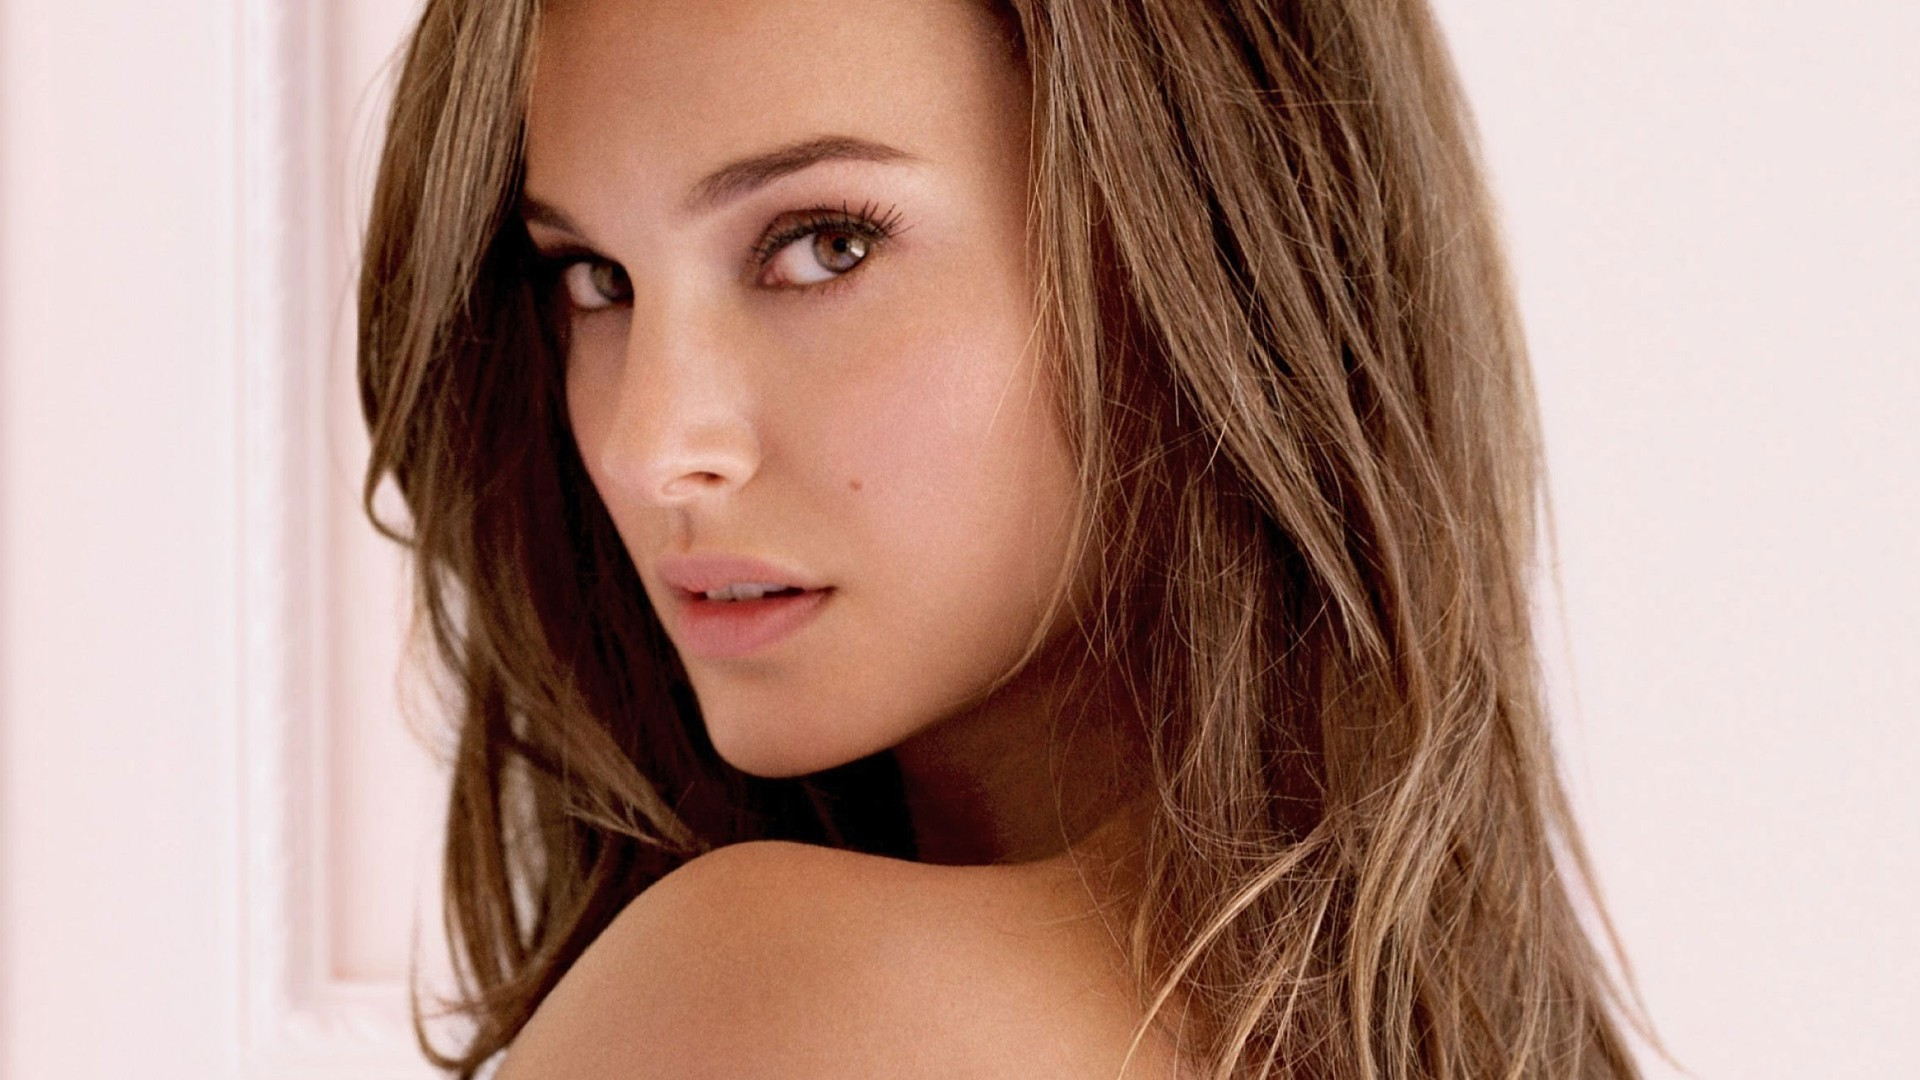 Natalie Portman 2017 Wallpapers: Natalie Portman Wallpapers High Quality